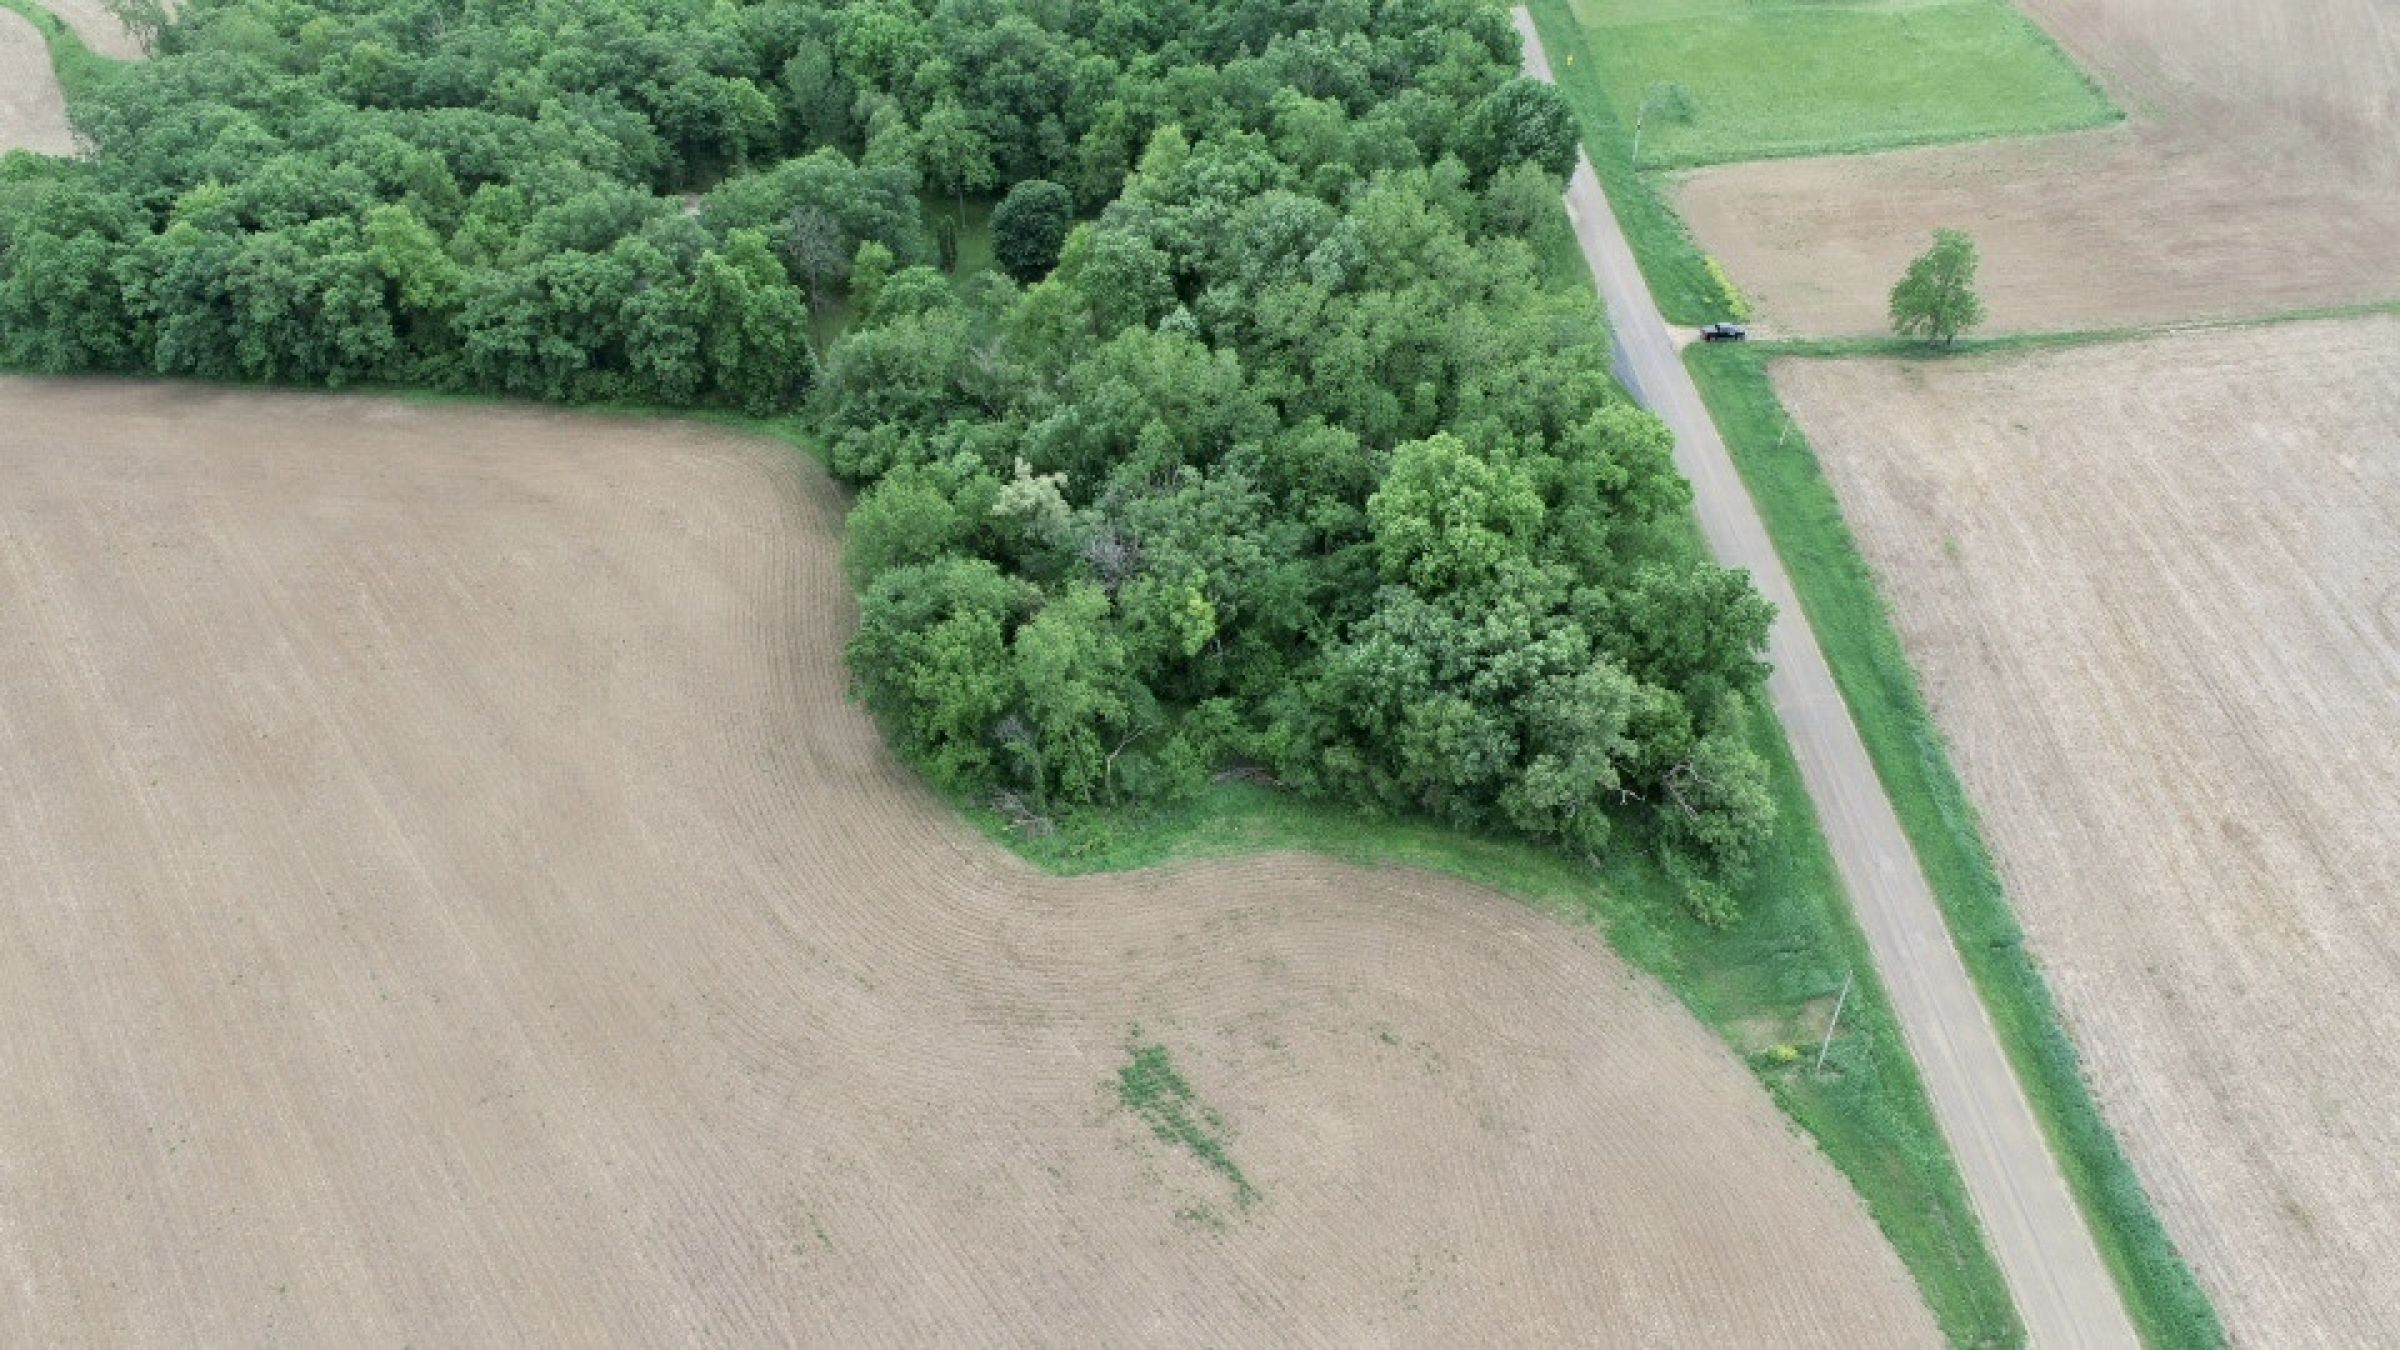 land-lafayette-county-wisconsin-1-acres-listing-number-15559-4-2021-05-28-184446.jpg